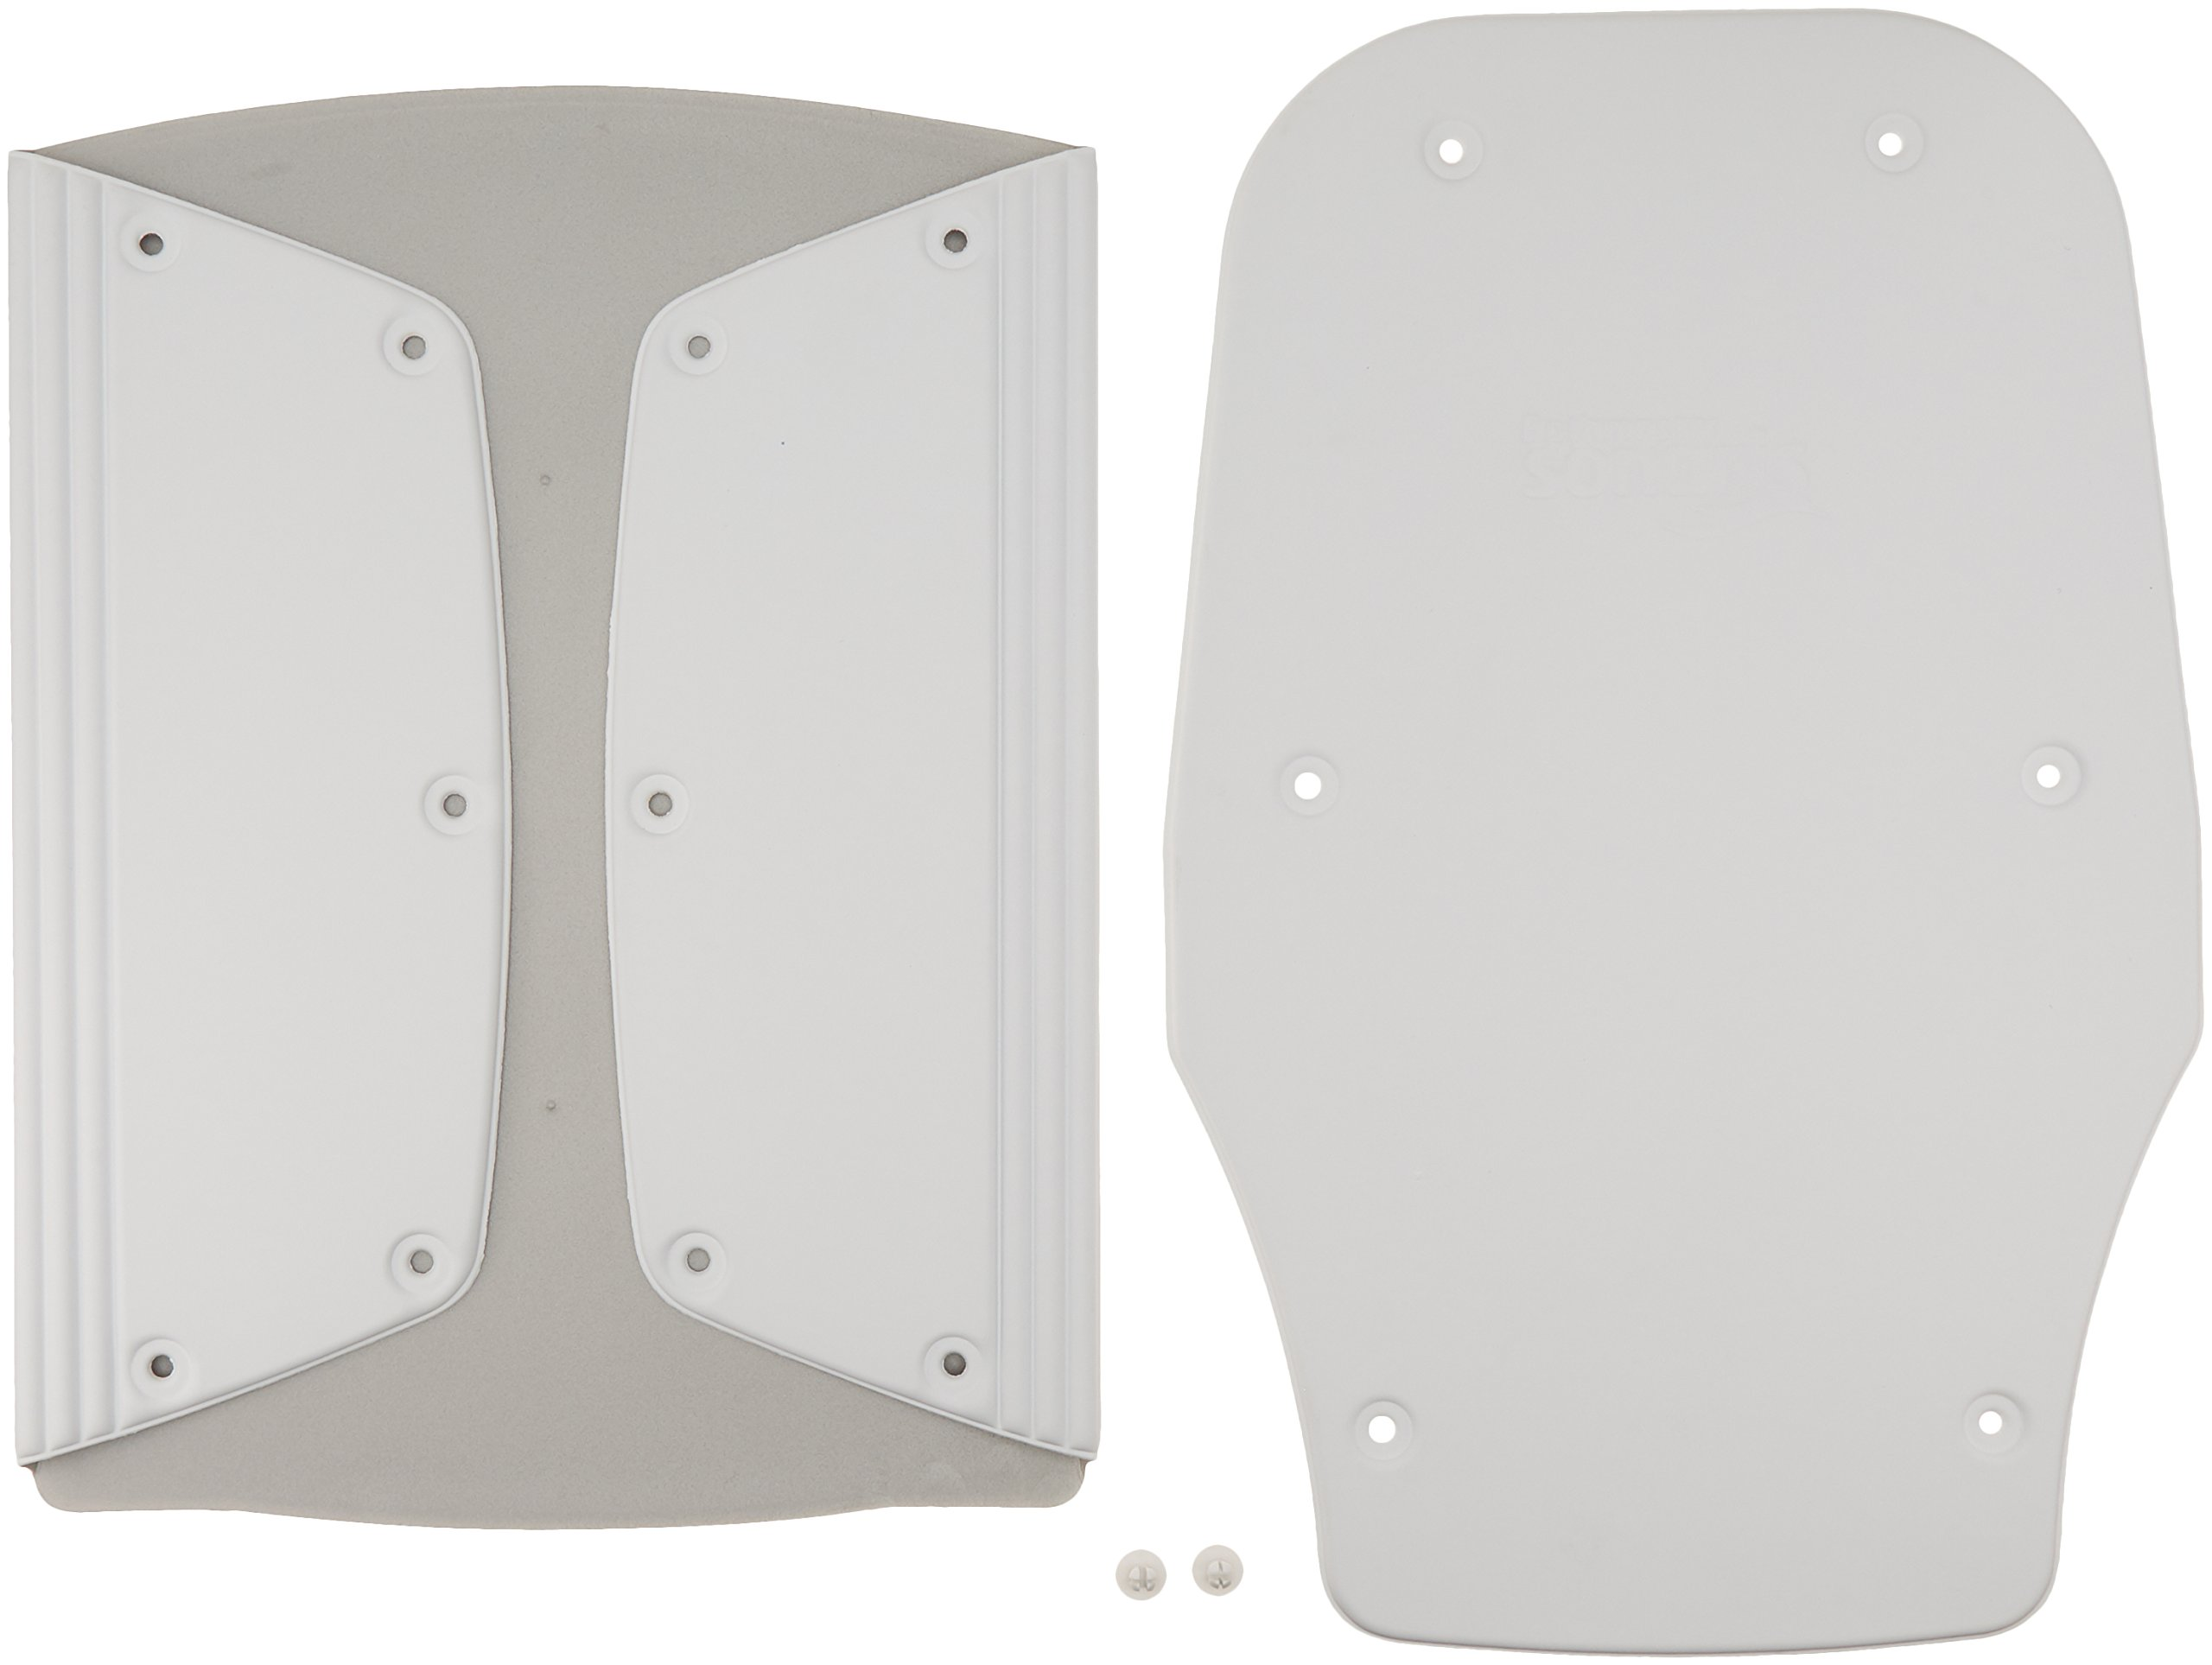 Bathmaster Sonaris White Cover, Standard White Cover for Sonaris Reclining Bathlift, Comfortable 1/4'' Foam Seat and Backrest Cover Protects Bath Lift, Easy to Use and Washable Cover Snaps Into Place by Sammons Preston